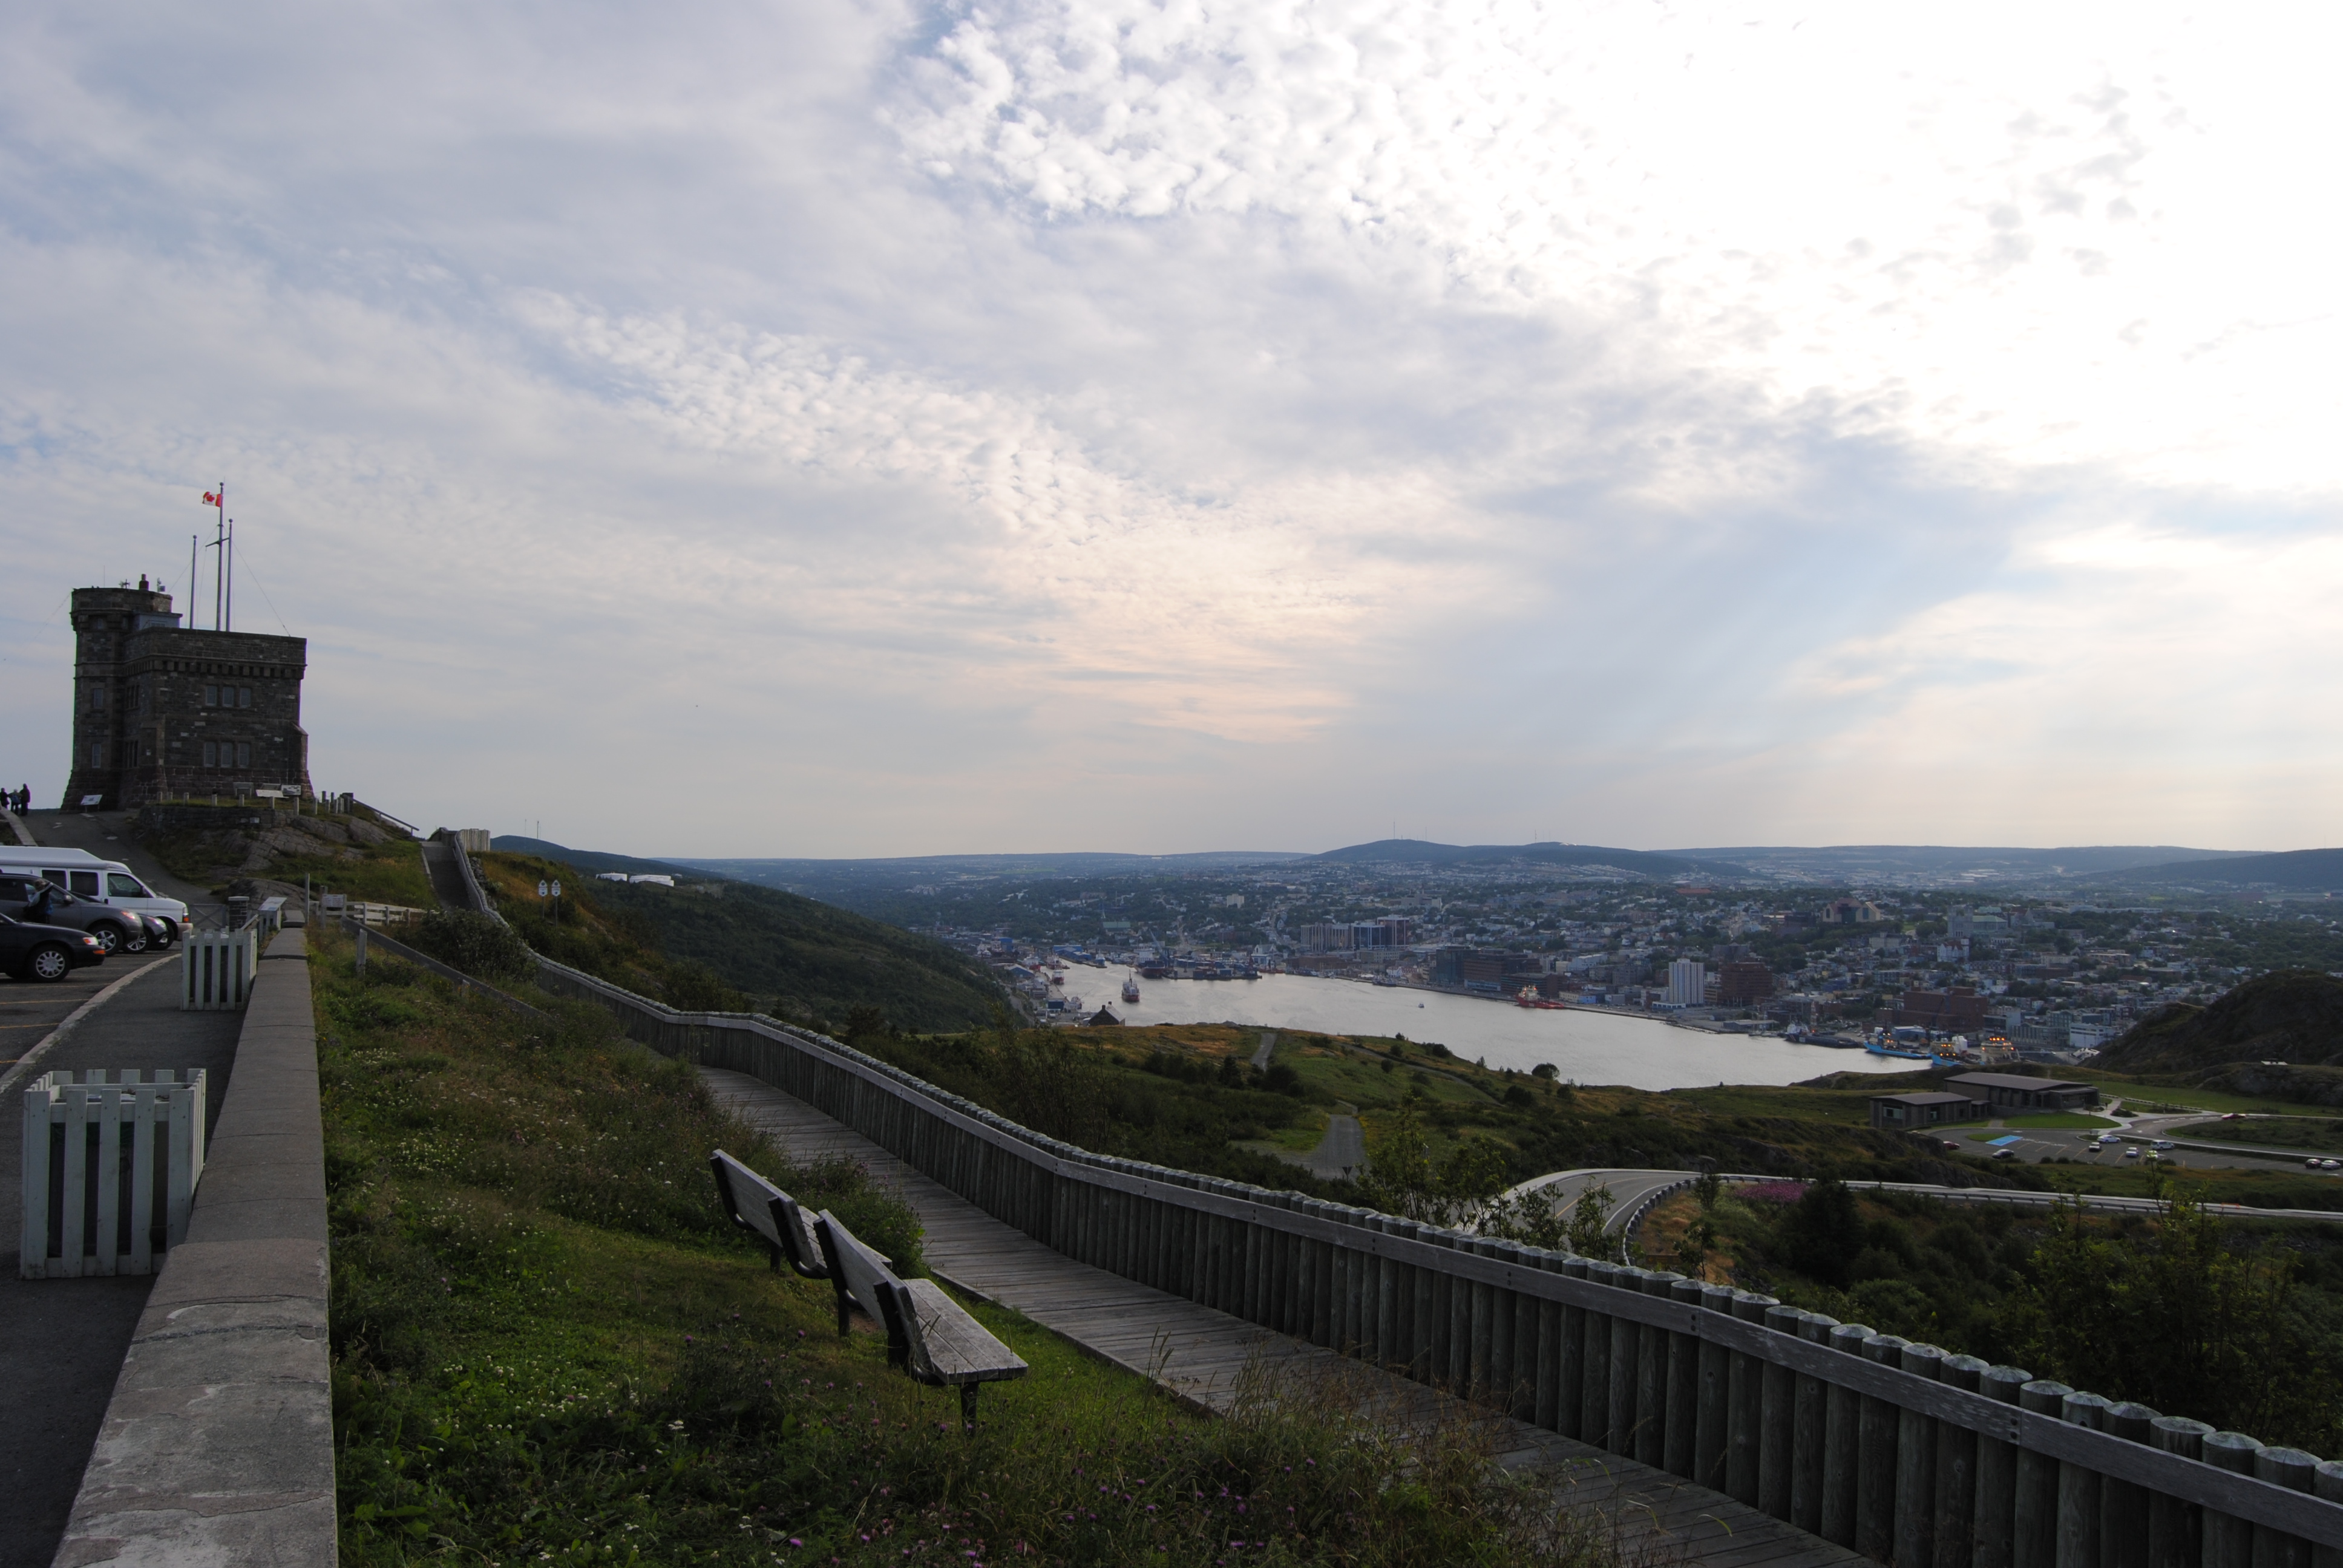 Signal Hill and St. John's in the distance.